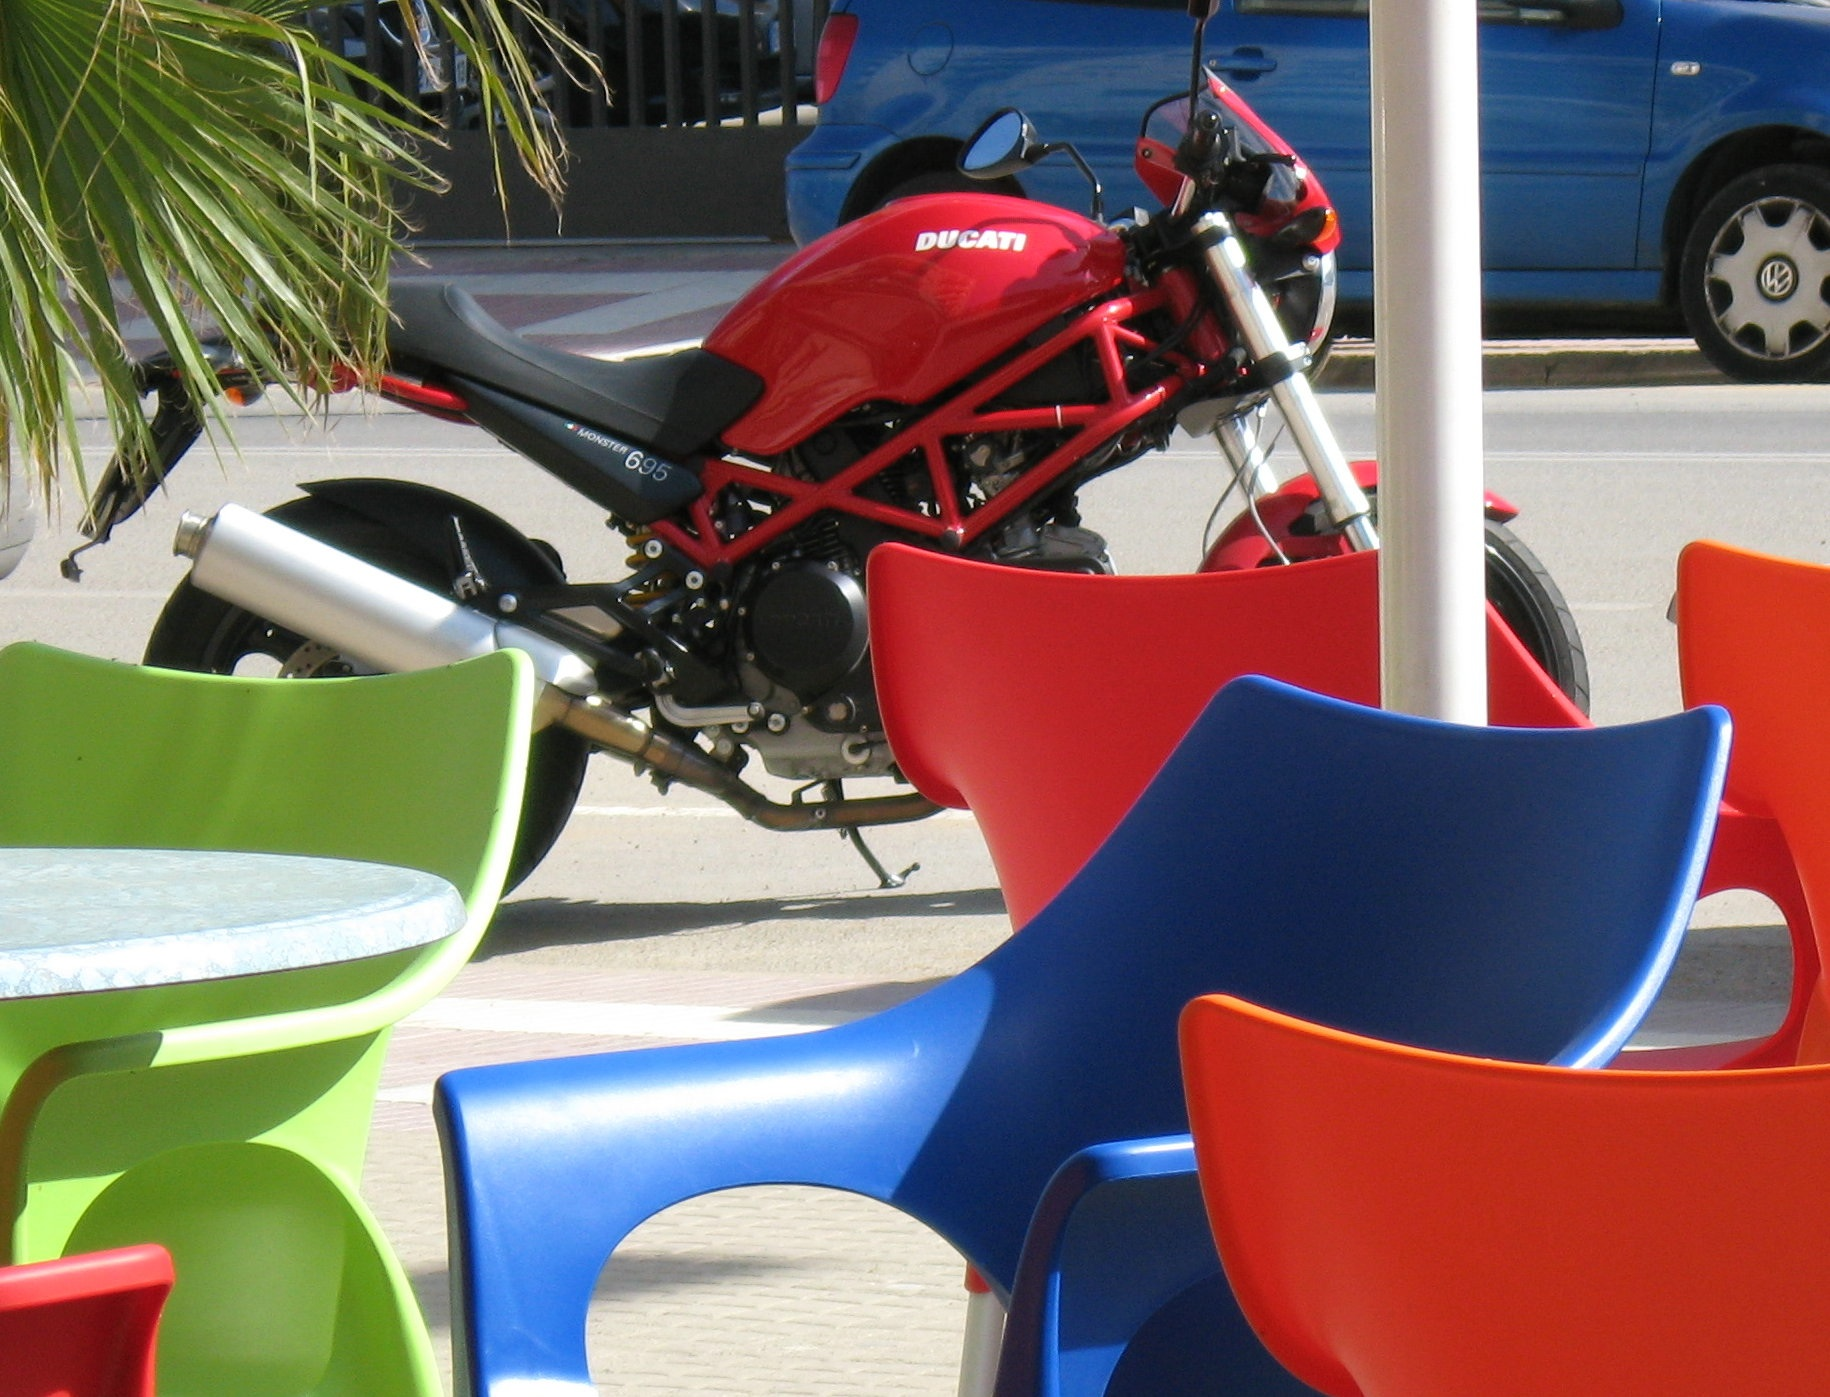 Ducati Monster In Cafe